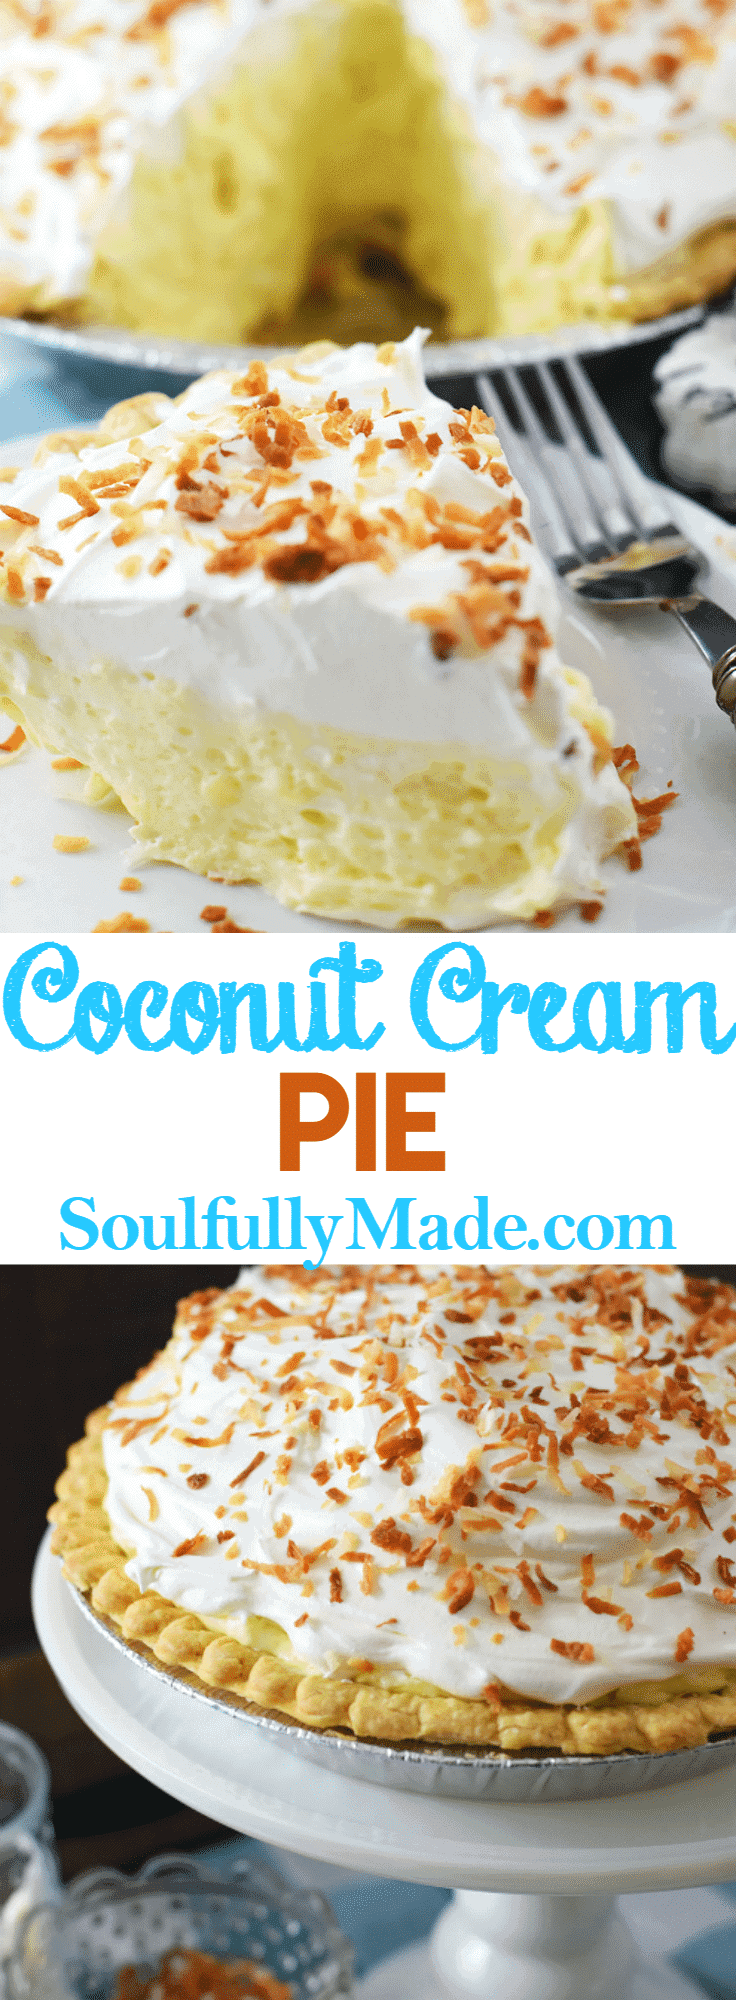 Pin Collage of Coconut Cream Pie